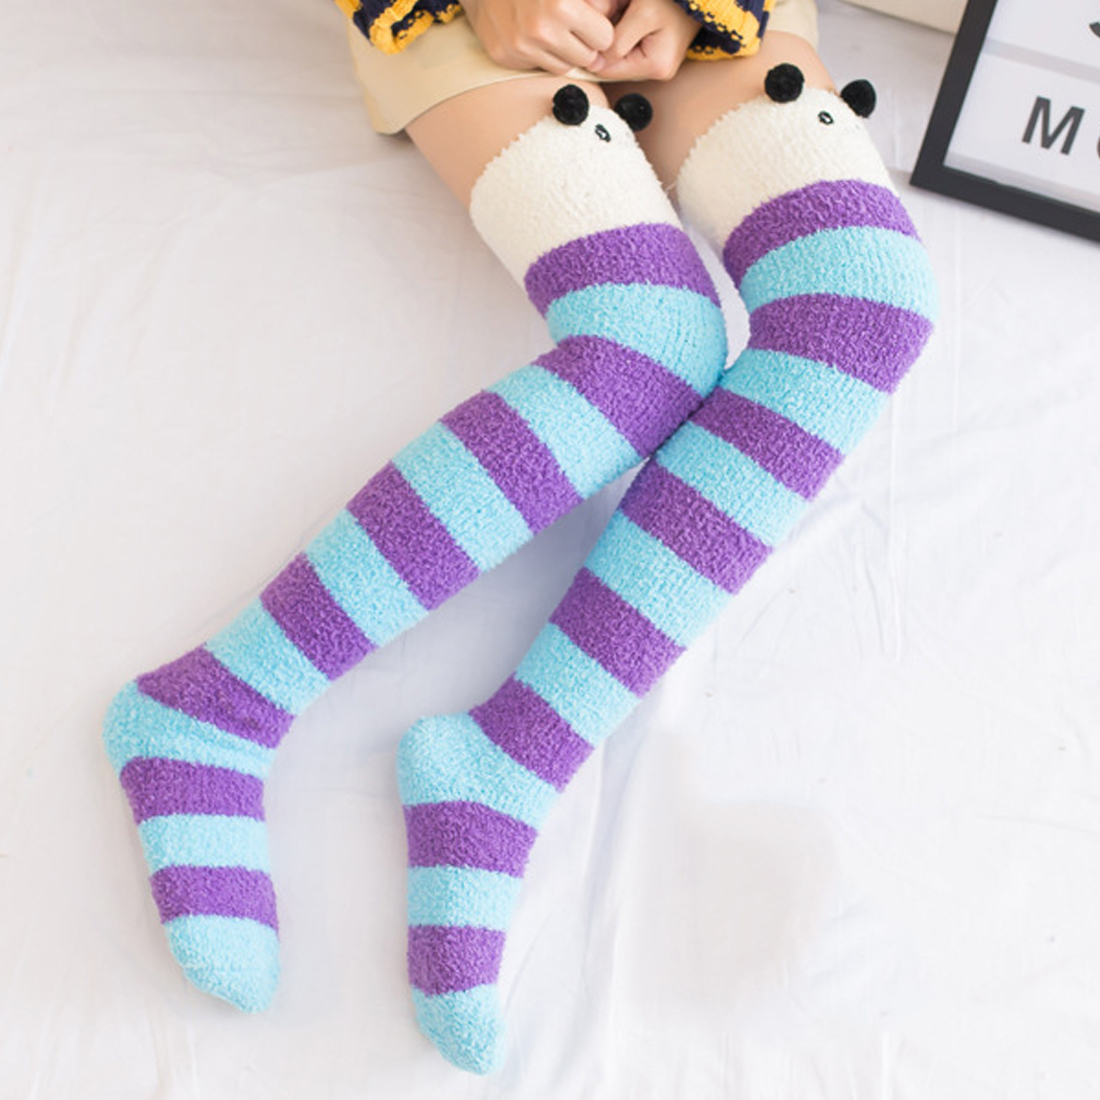 69ecc03c73d Hot Japanese Girl Animal Modeling Knee Socks Striped Cute Lovely Kawaii  Cozy Long Thigh High Socks